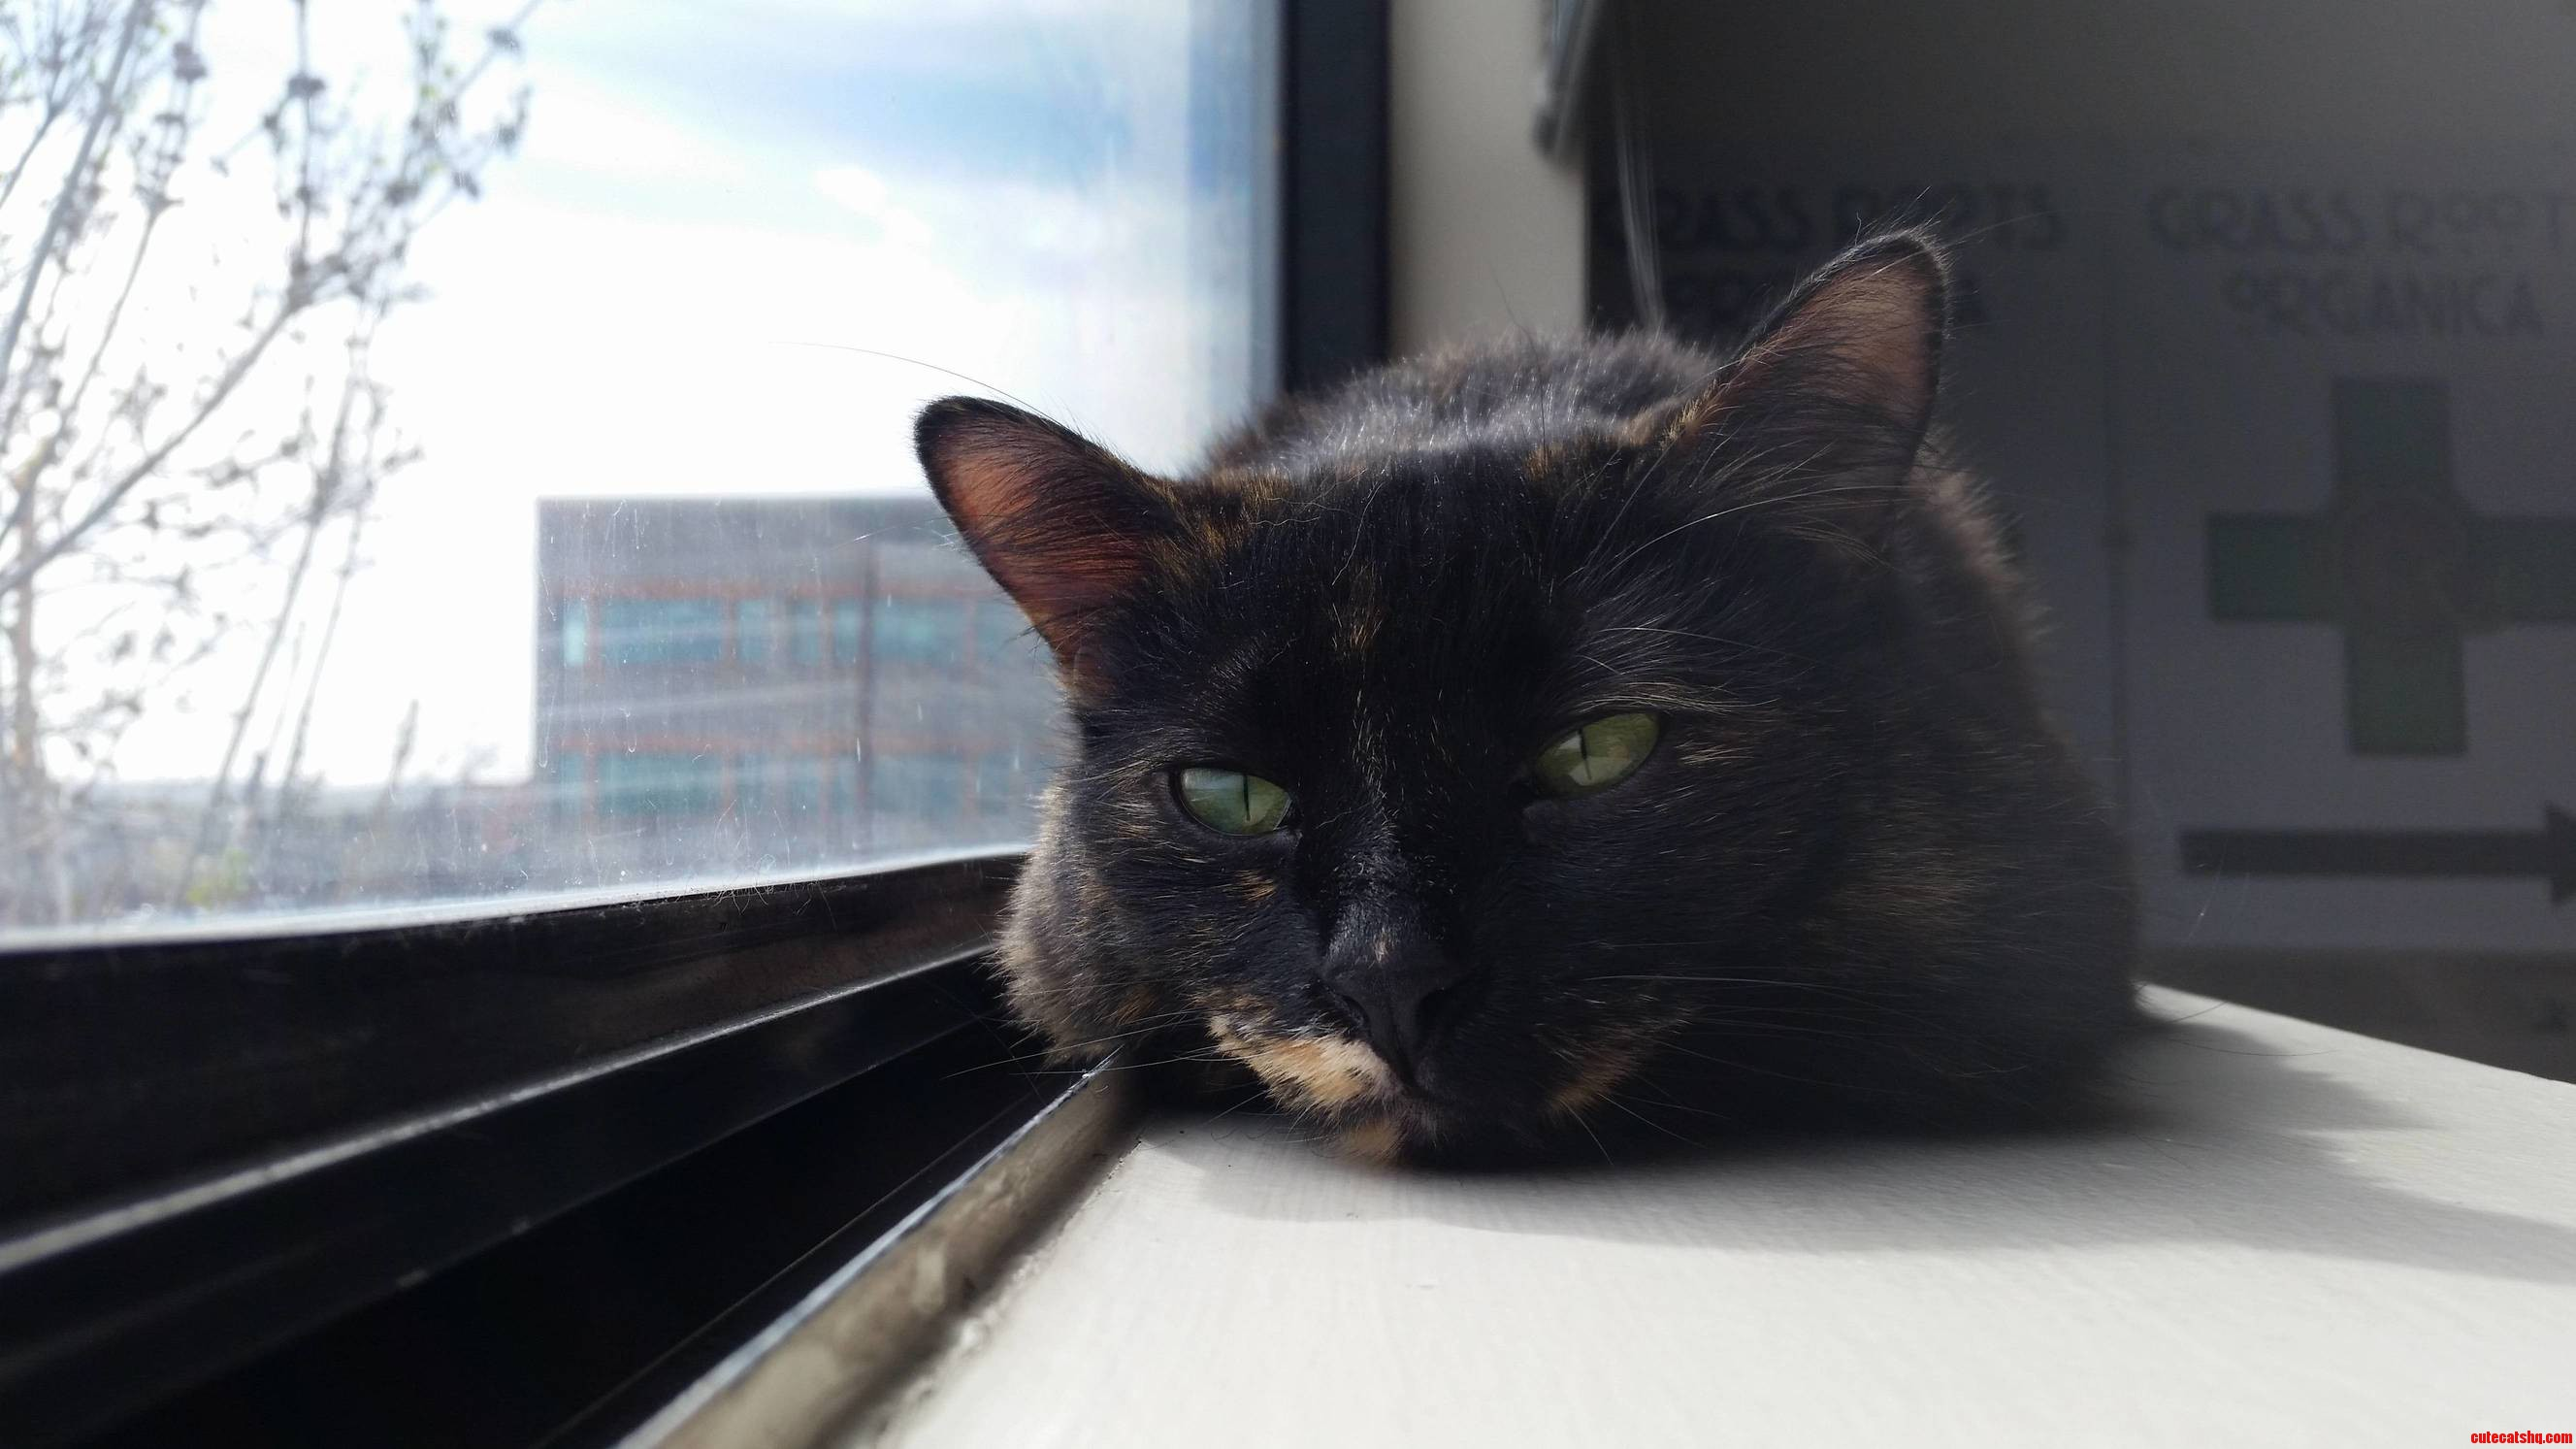 Sensi likes to sleep by the window